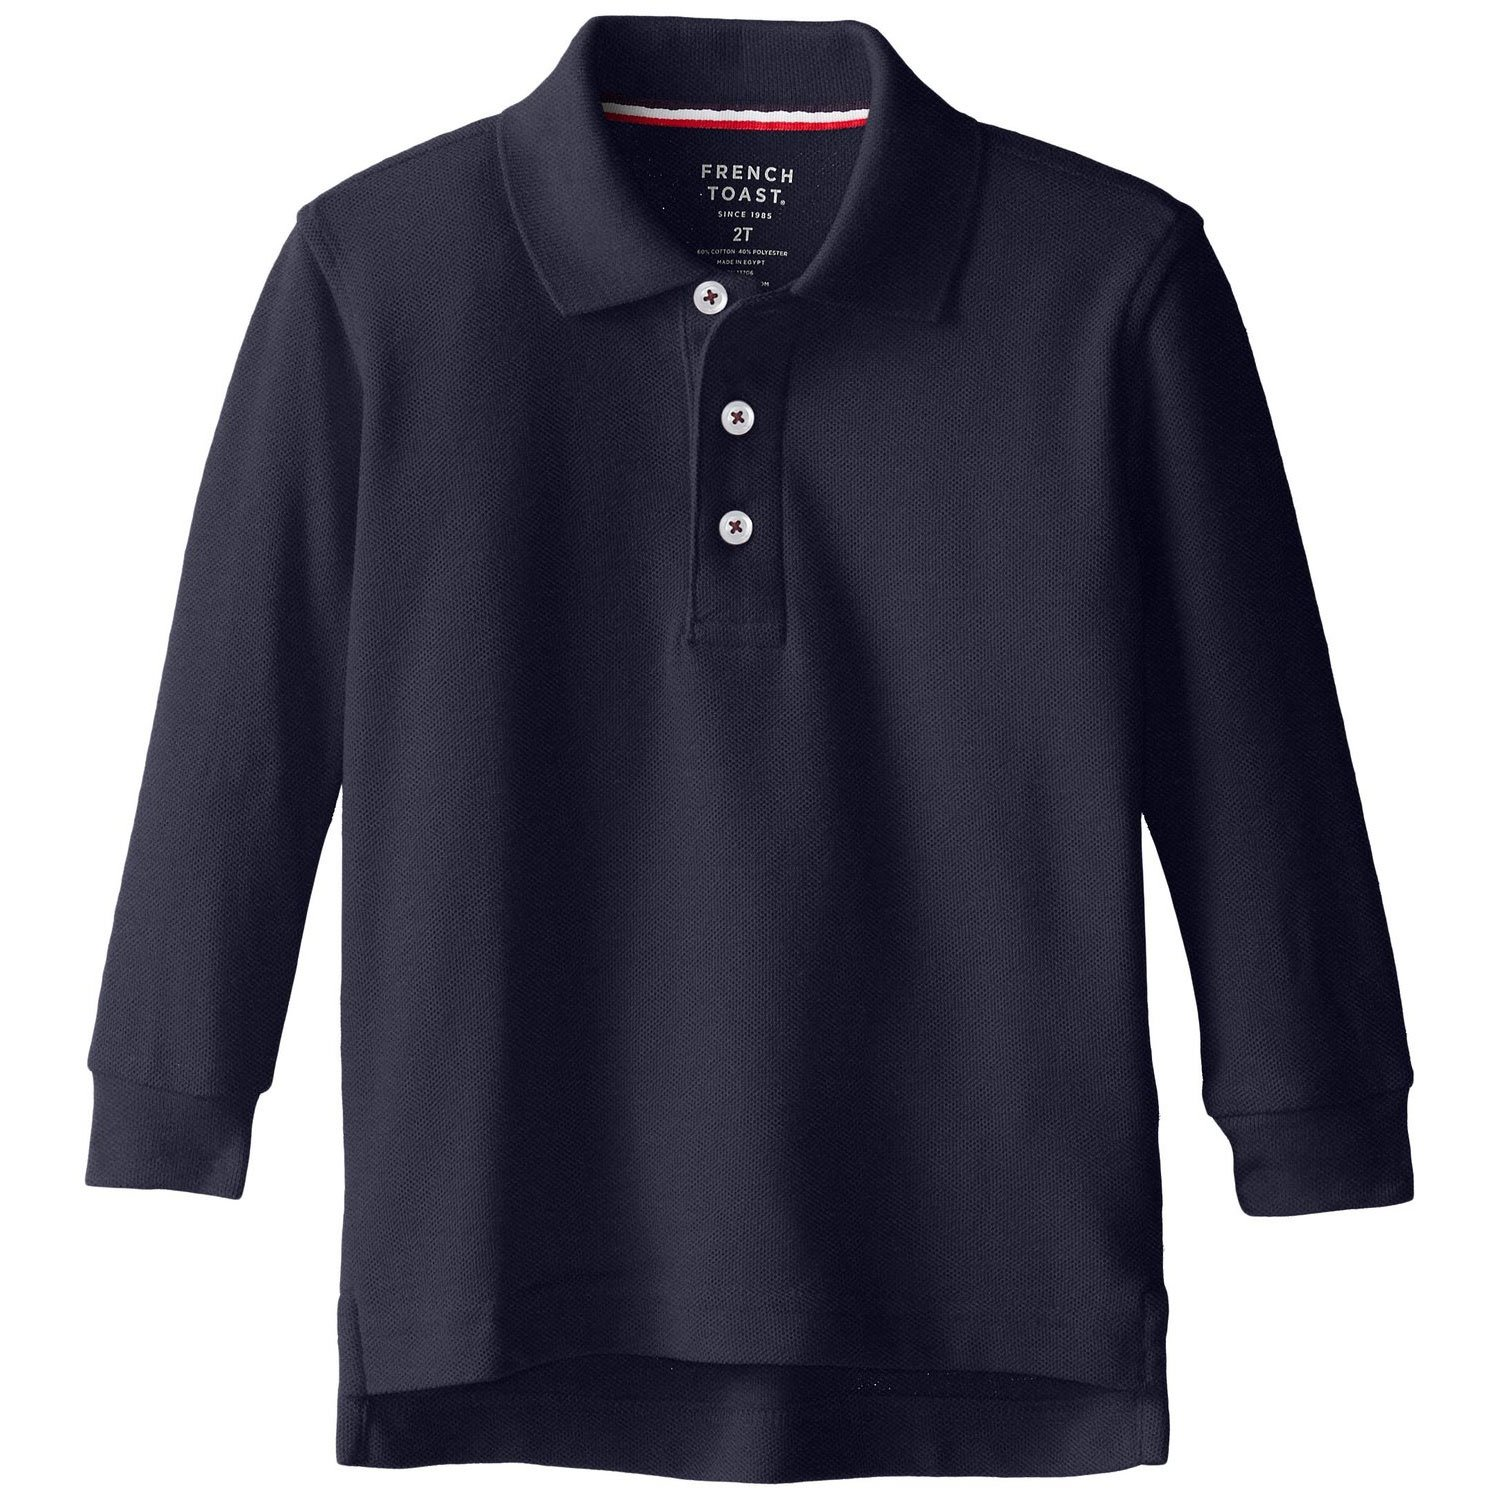 French Toast School Uniform Boys Long Sleeve Pique Polo Shirt, Navy, X-Small (4/5)